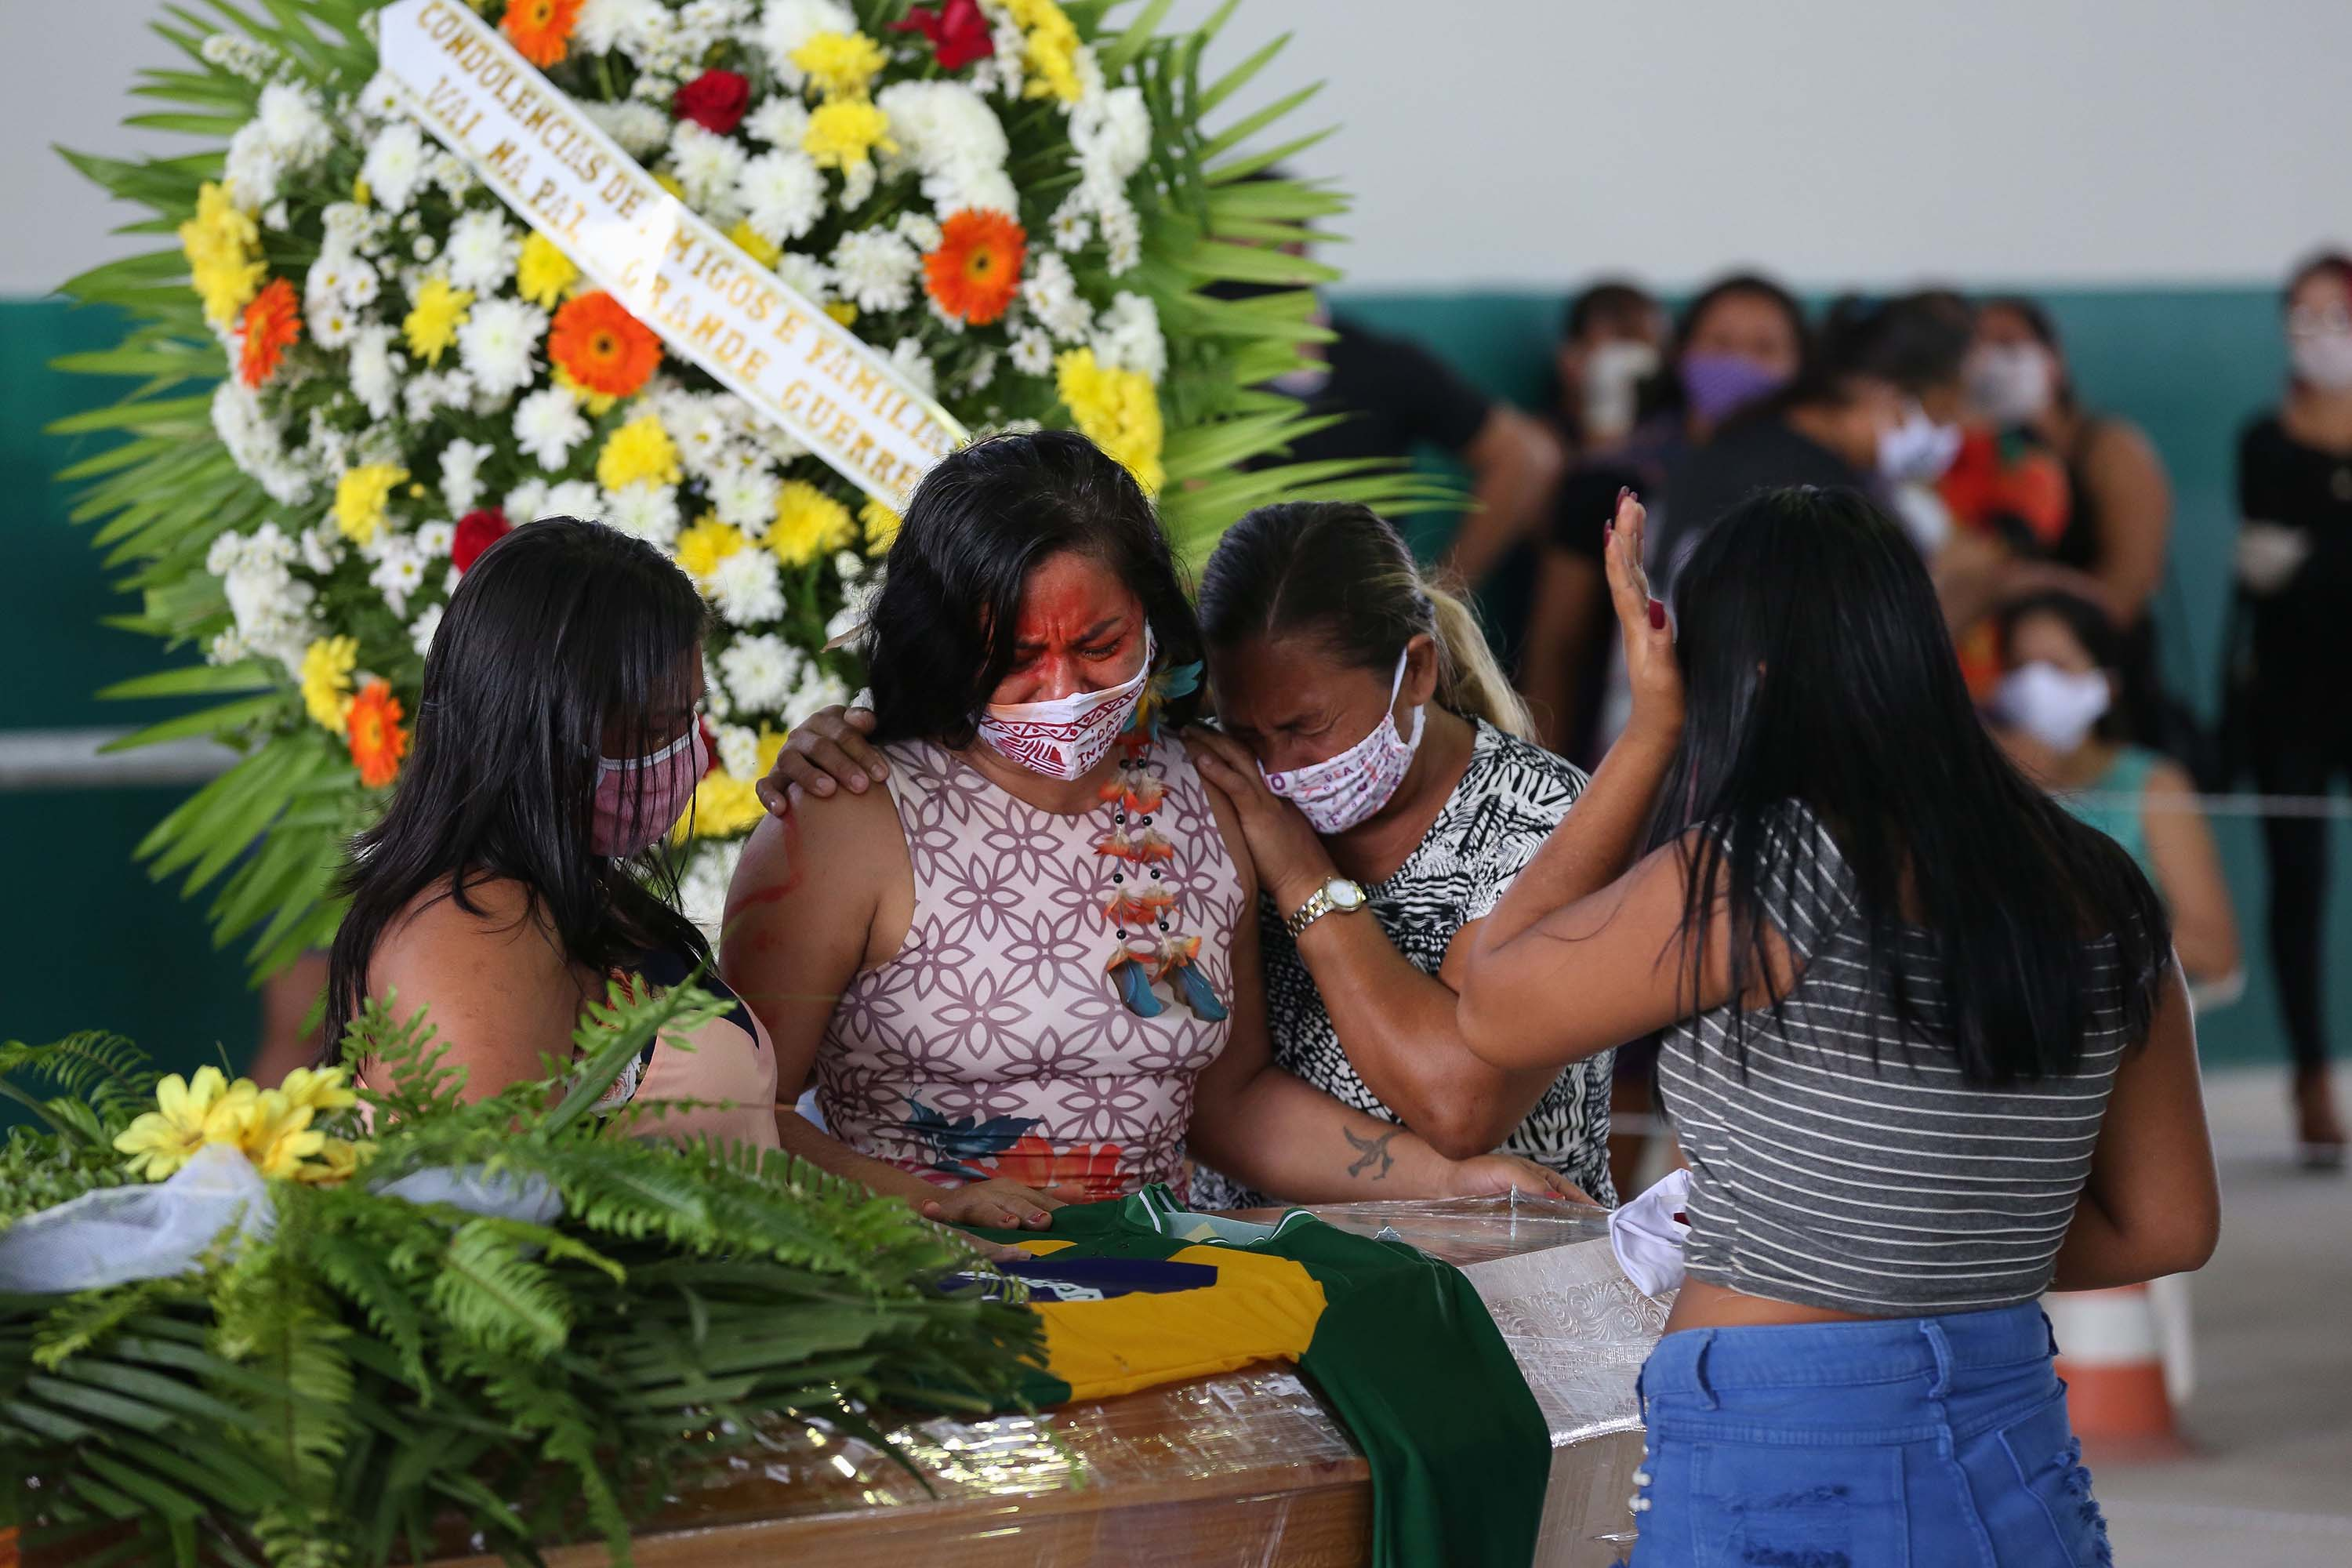 Members of the Parque das Tribos community mourn beside the coffin of Chief Messias, 53, of the Kokama tribe, who died from coronavirus, in Manaus, Brazil, on May 14.